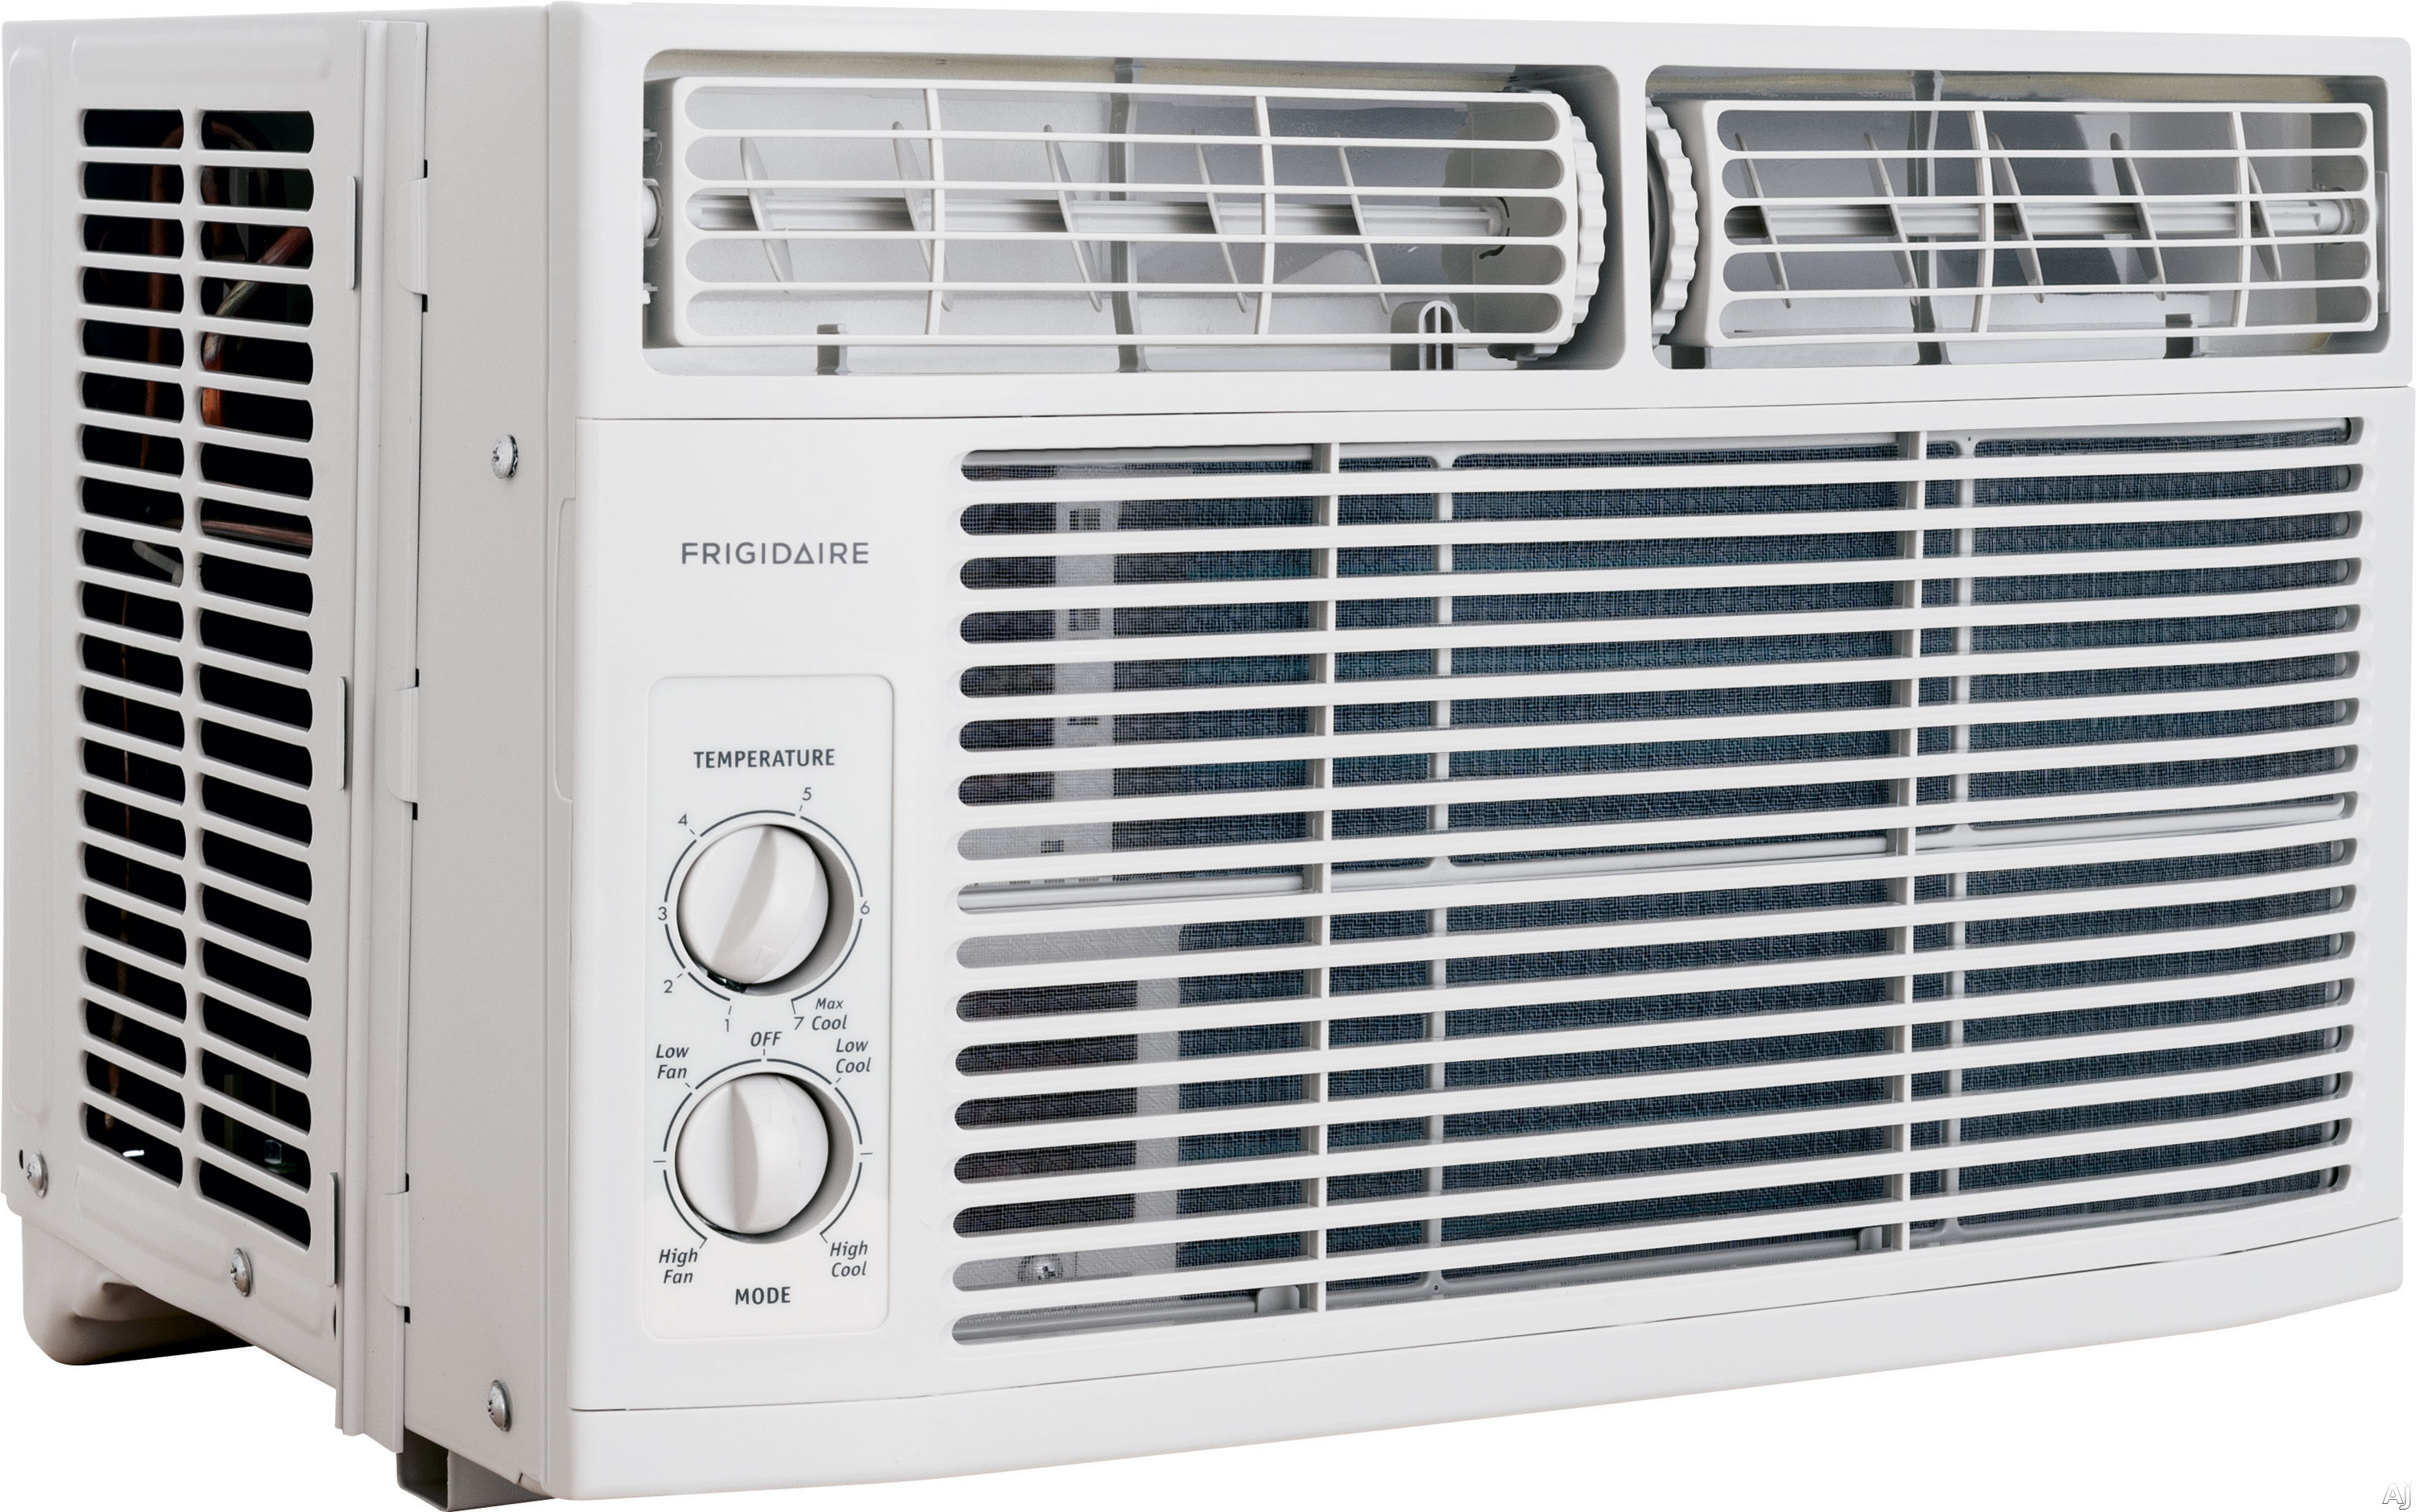 Home > Air Conditioners > Room Air Conditioners > FFRA0611Q1 #212B30